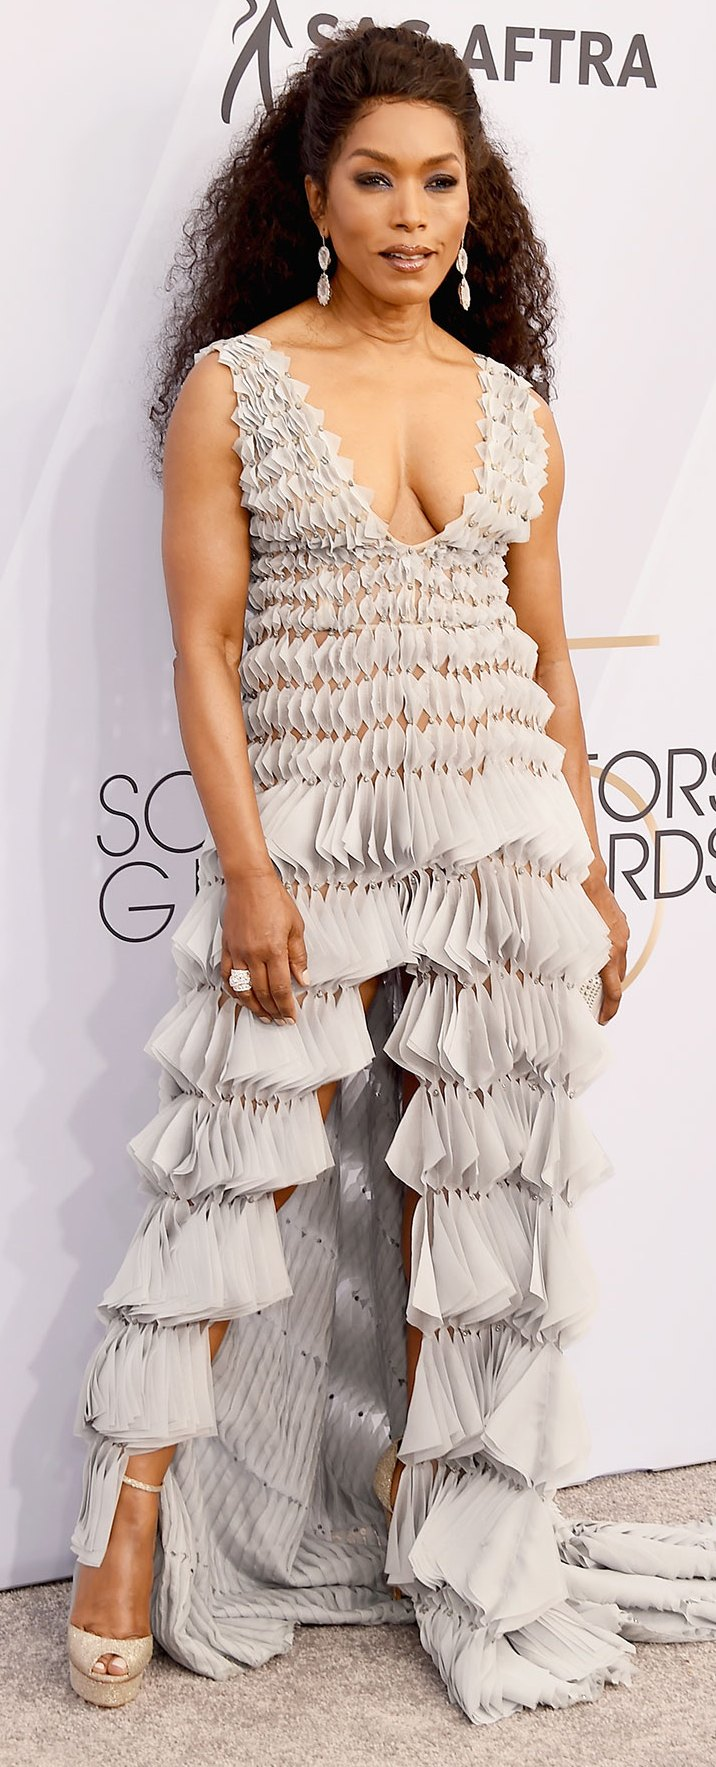 SAG Awards 2019 Angela Bassett